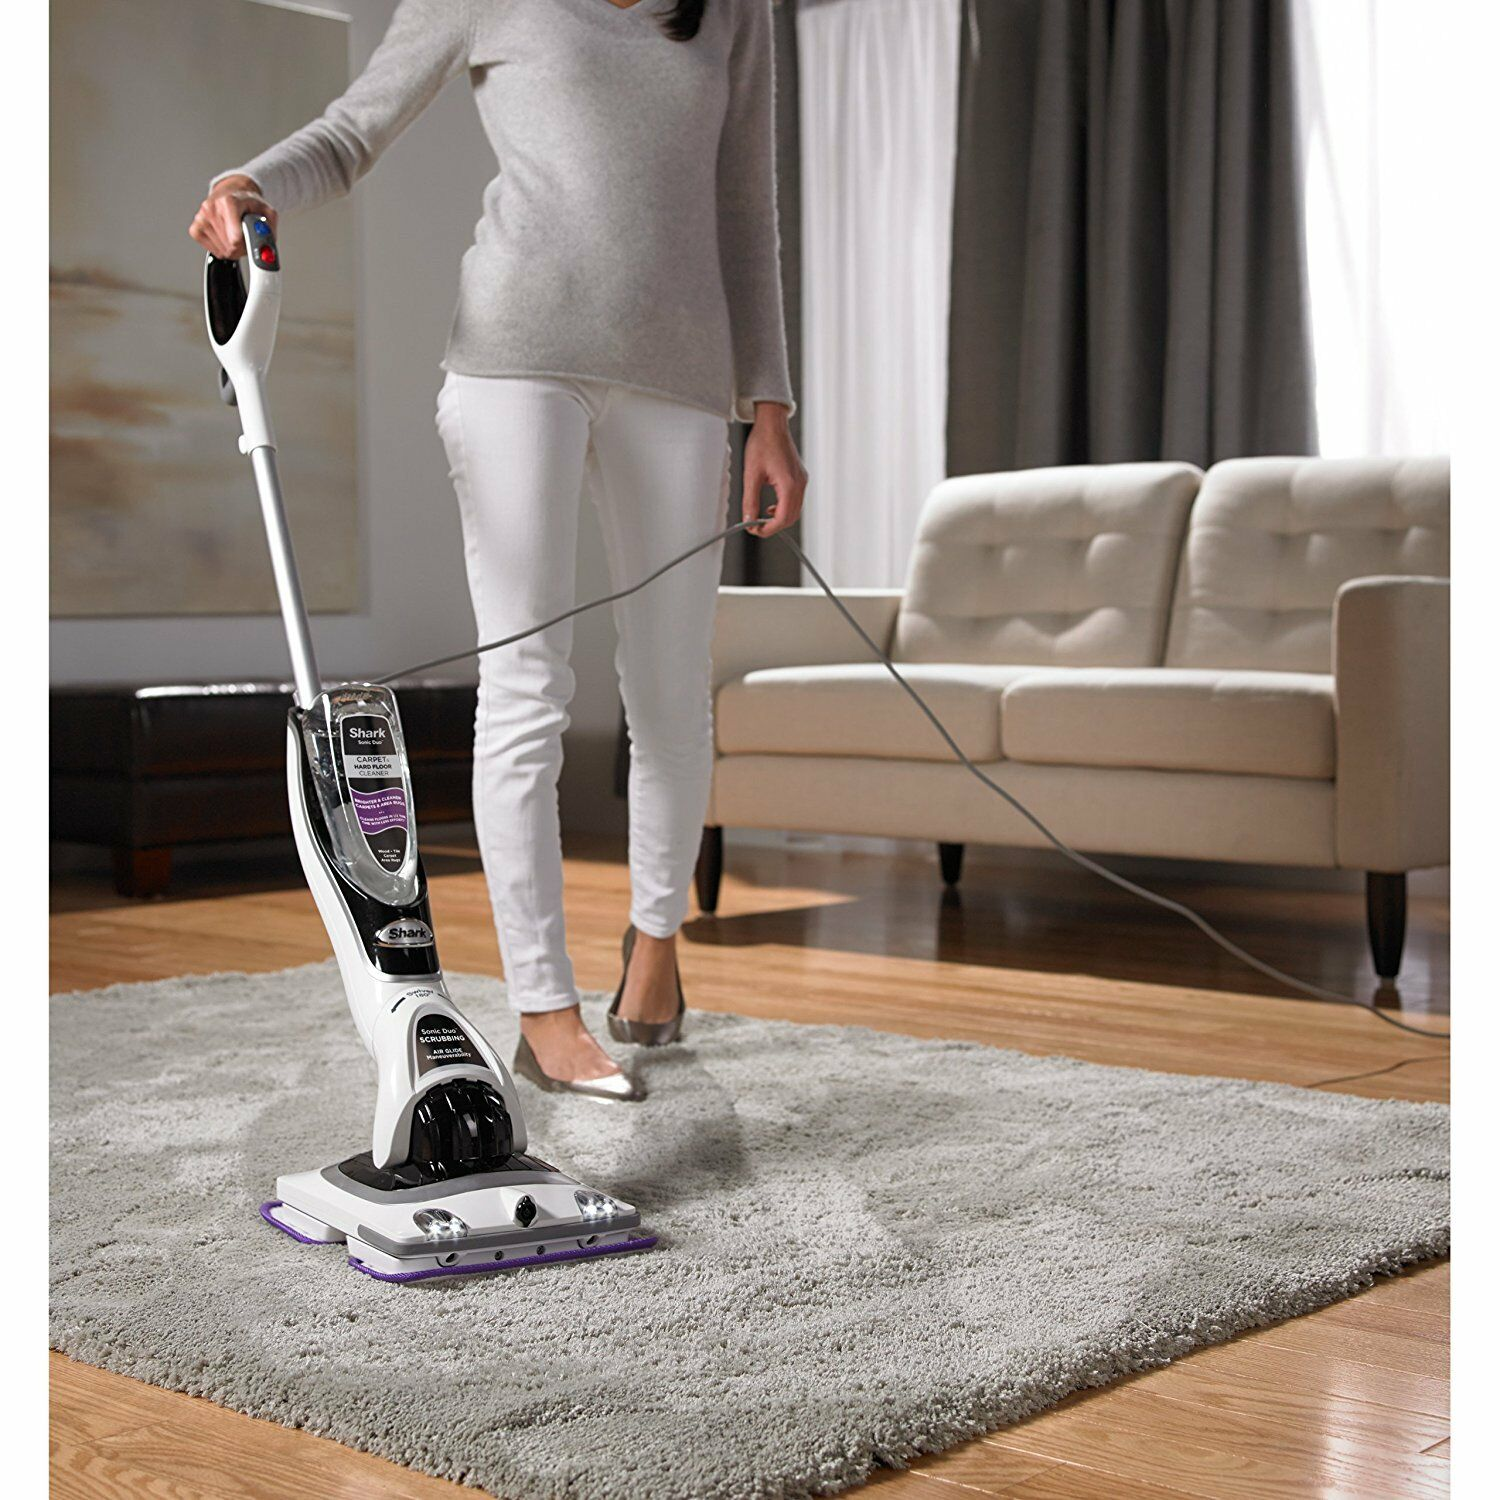 Shark Zz550 Sonic Duo Carpet And Hard Floor Cleaning